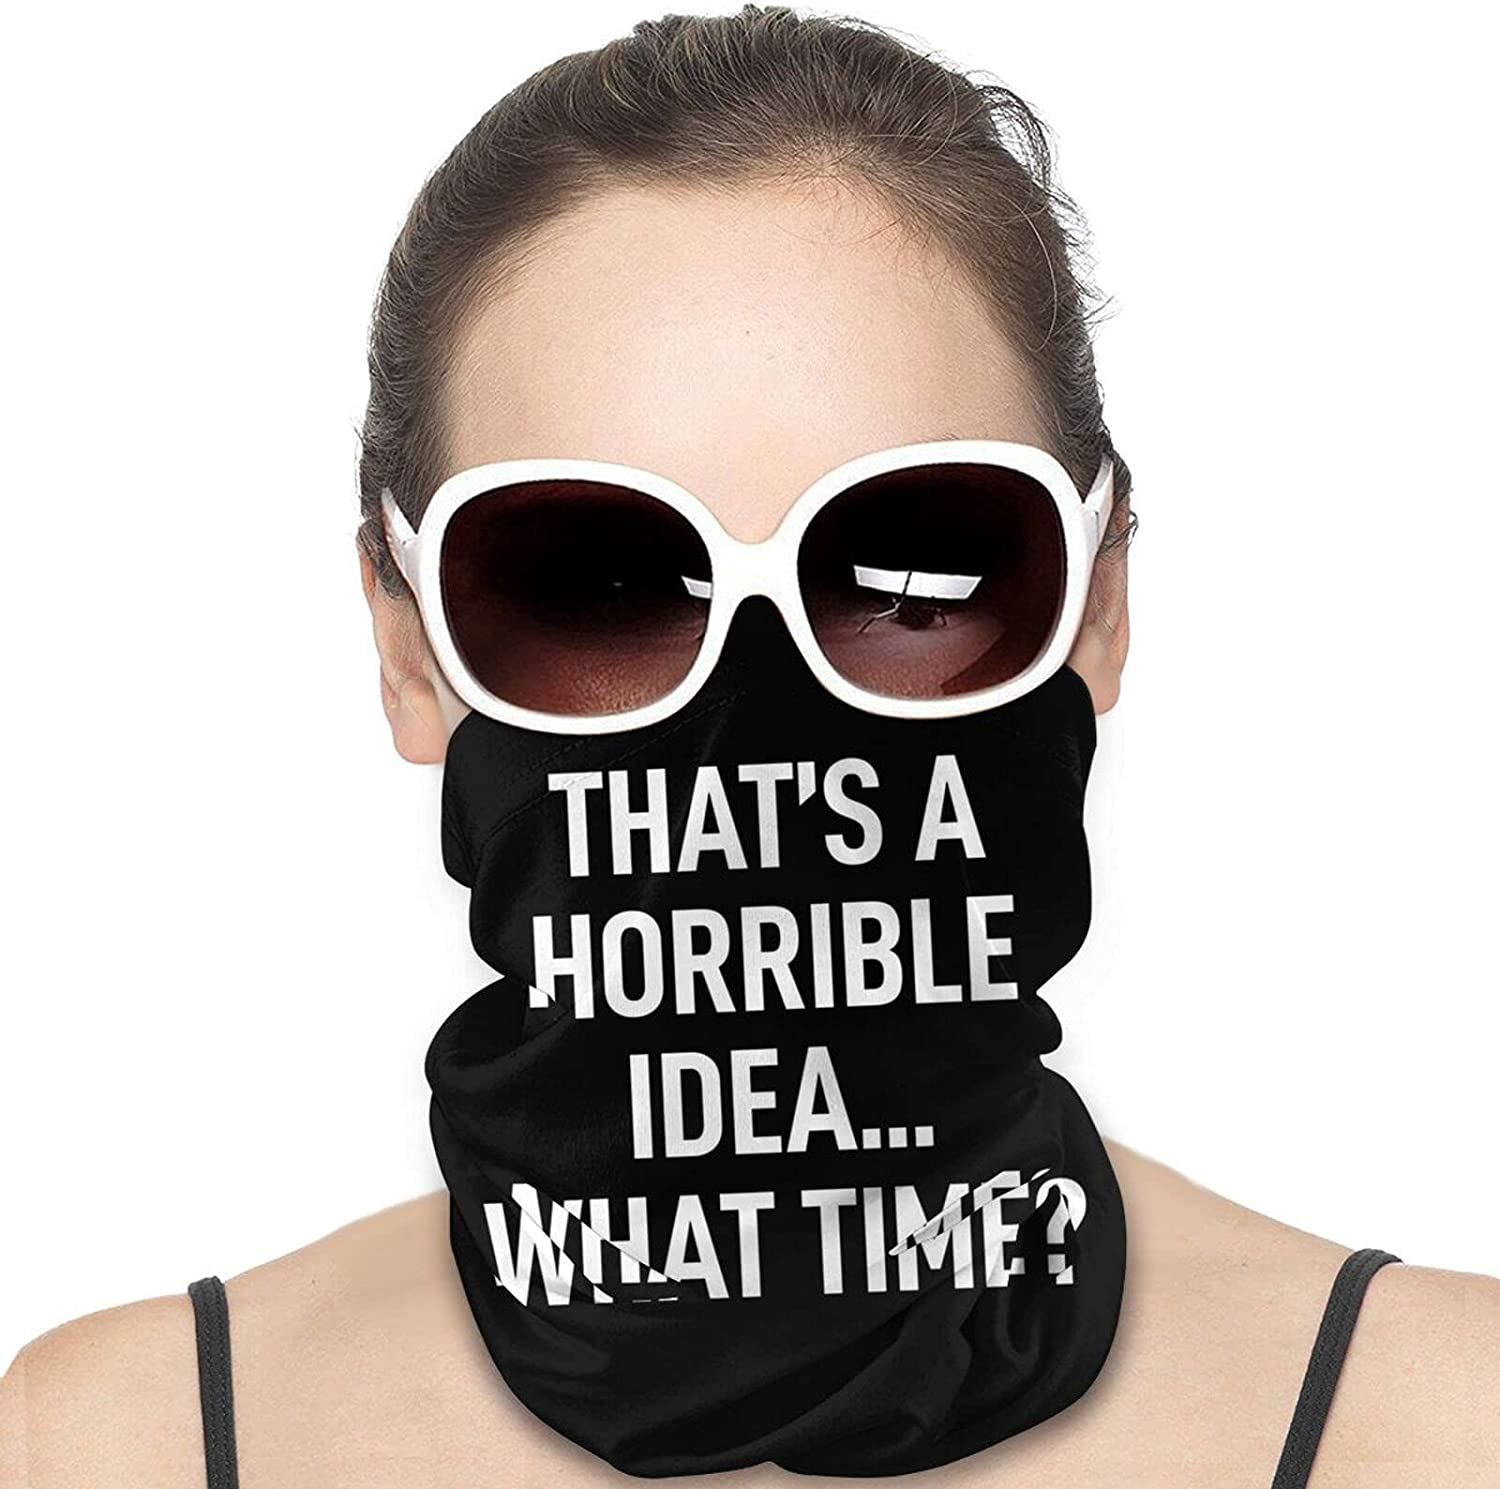 Thats A Horrible Idea What Time Round Neck Gaiter Bandnas Face Cover Uv Protection Prevent bask in Ice Scarf Headbands Perfect for Motorcycle Cycling Running Festival Raves Outdoors